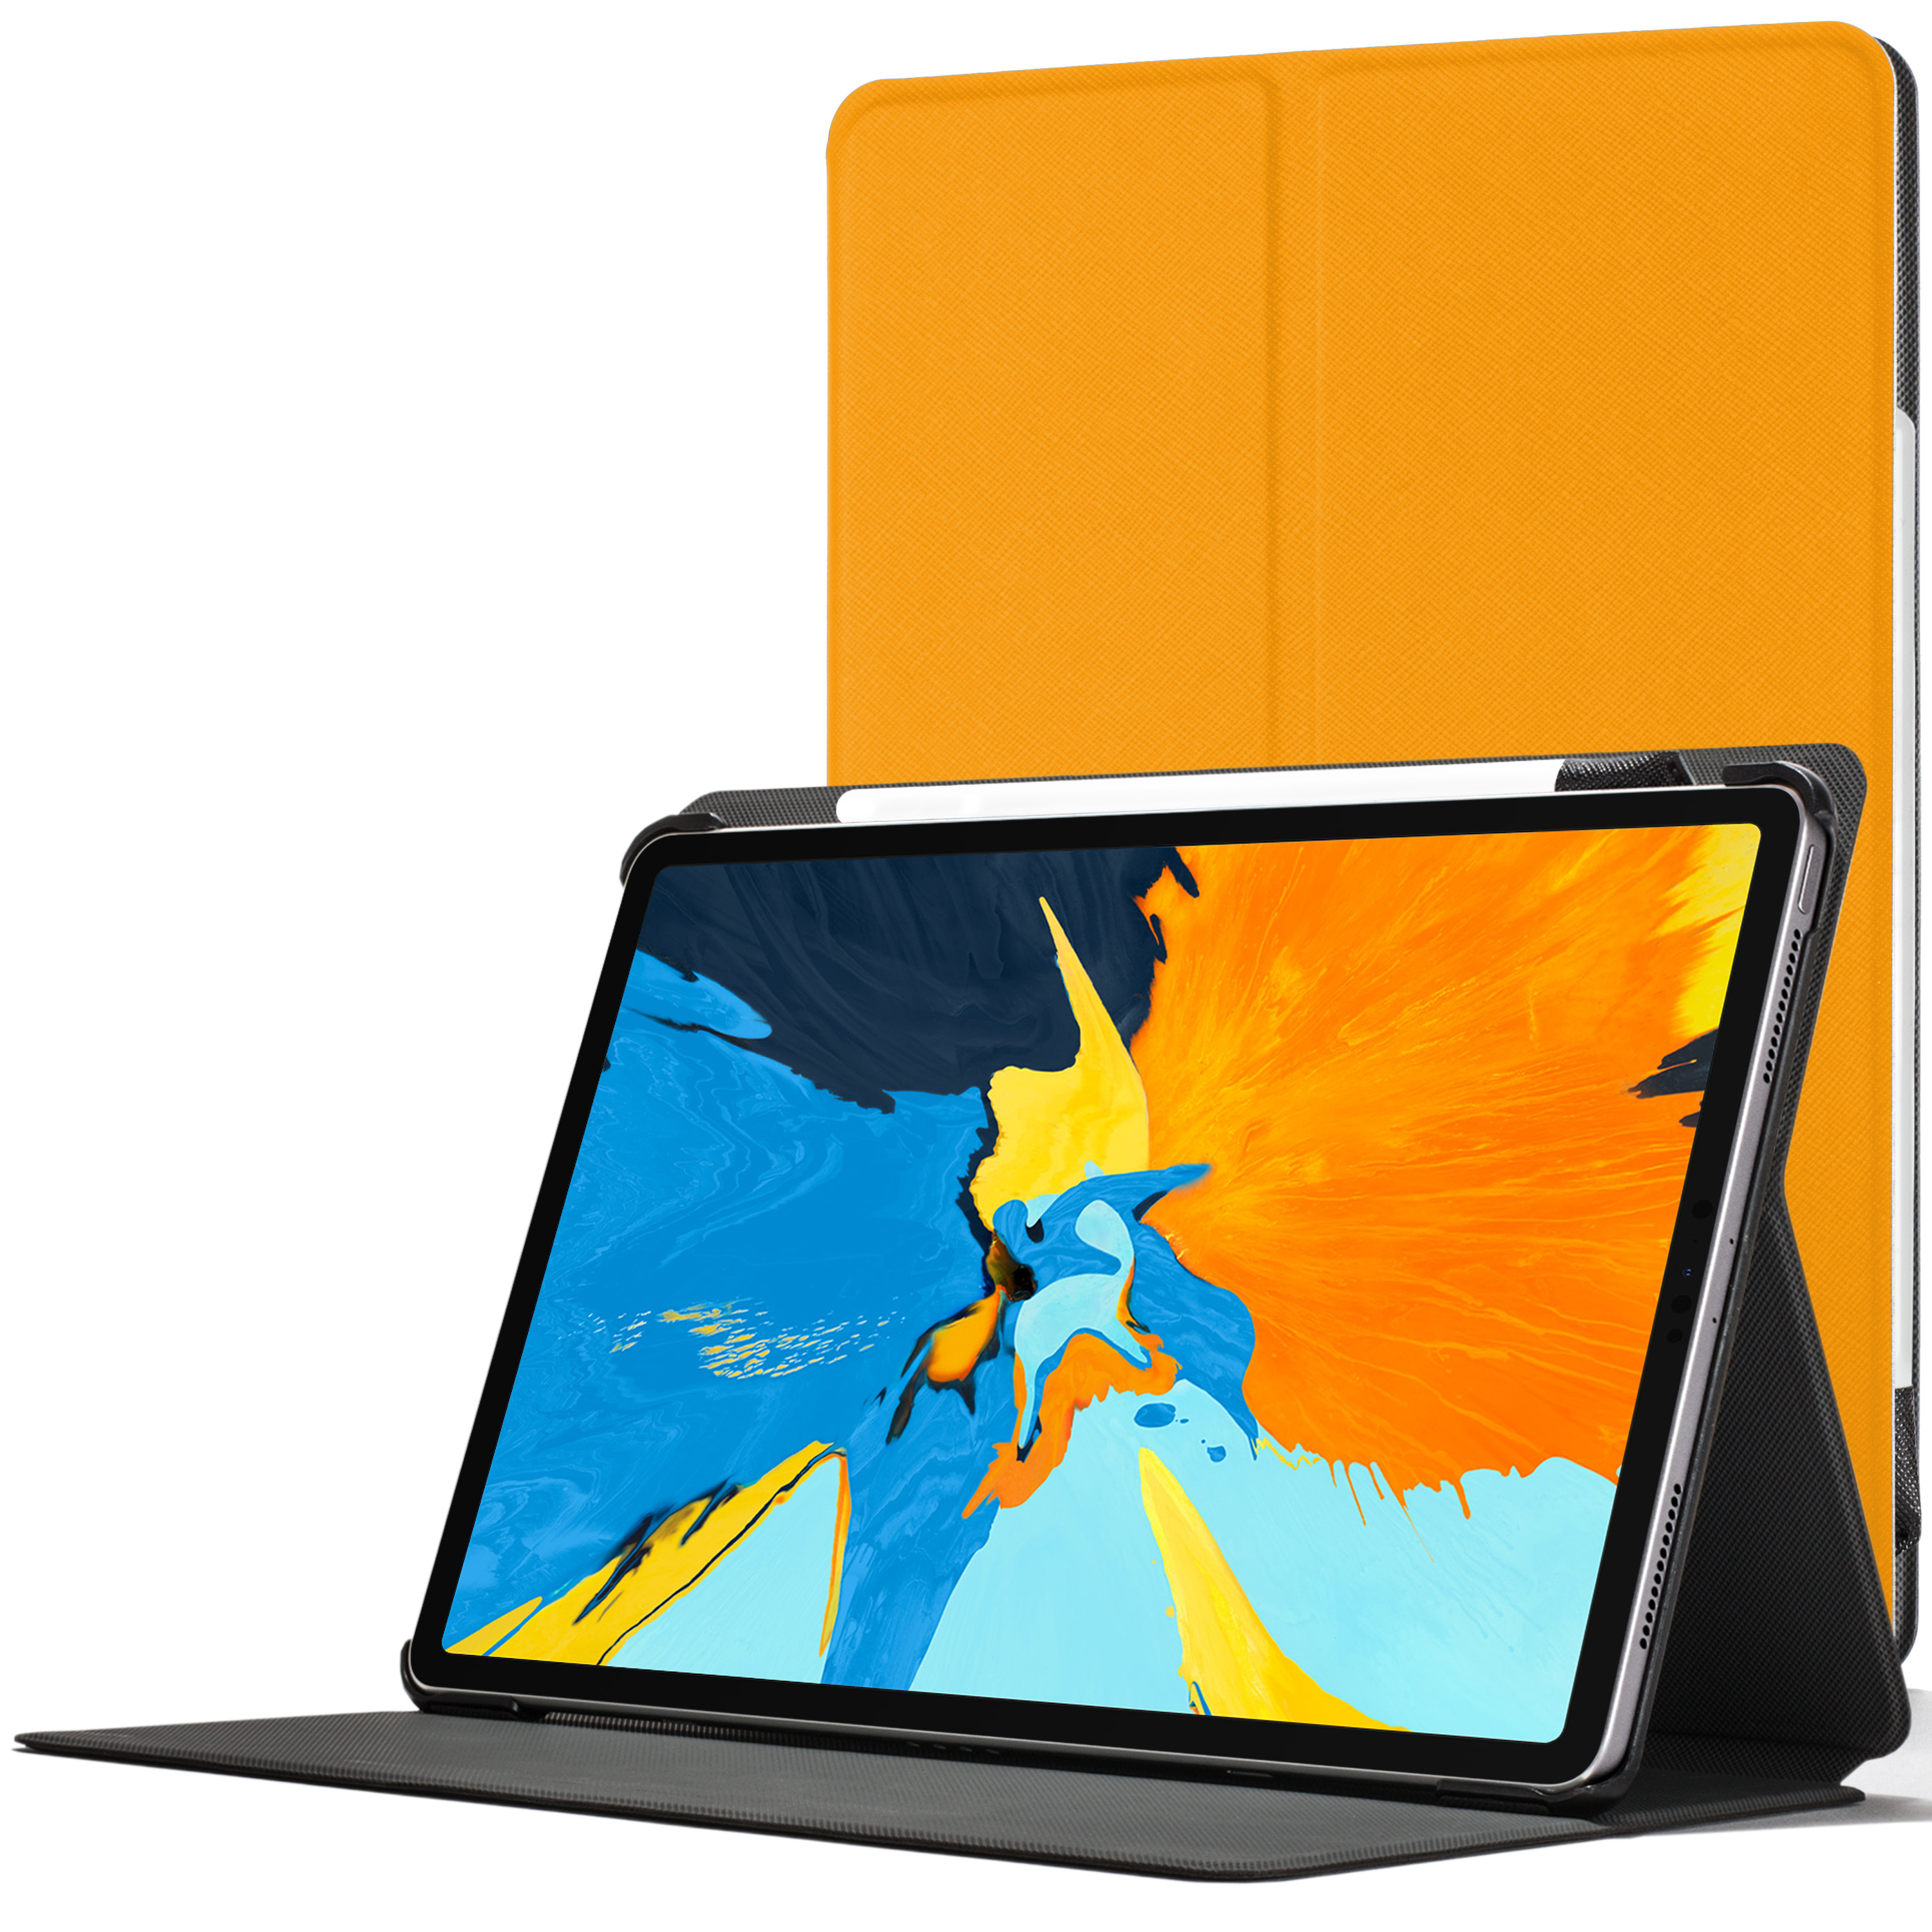 online store 9e864 bb2a8 Details about Apple iPad Pro 11 inch 2018 Smart Case | Protective Case  Cover Stand | Yellow